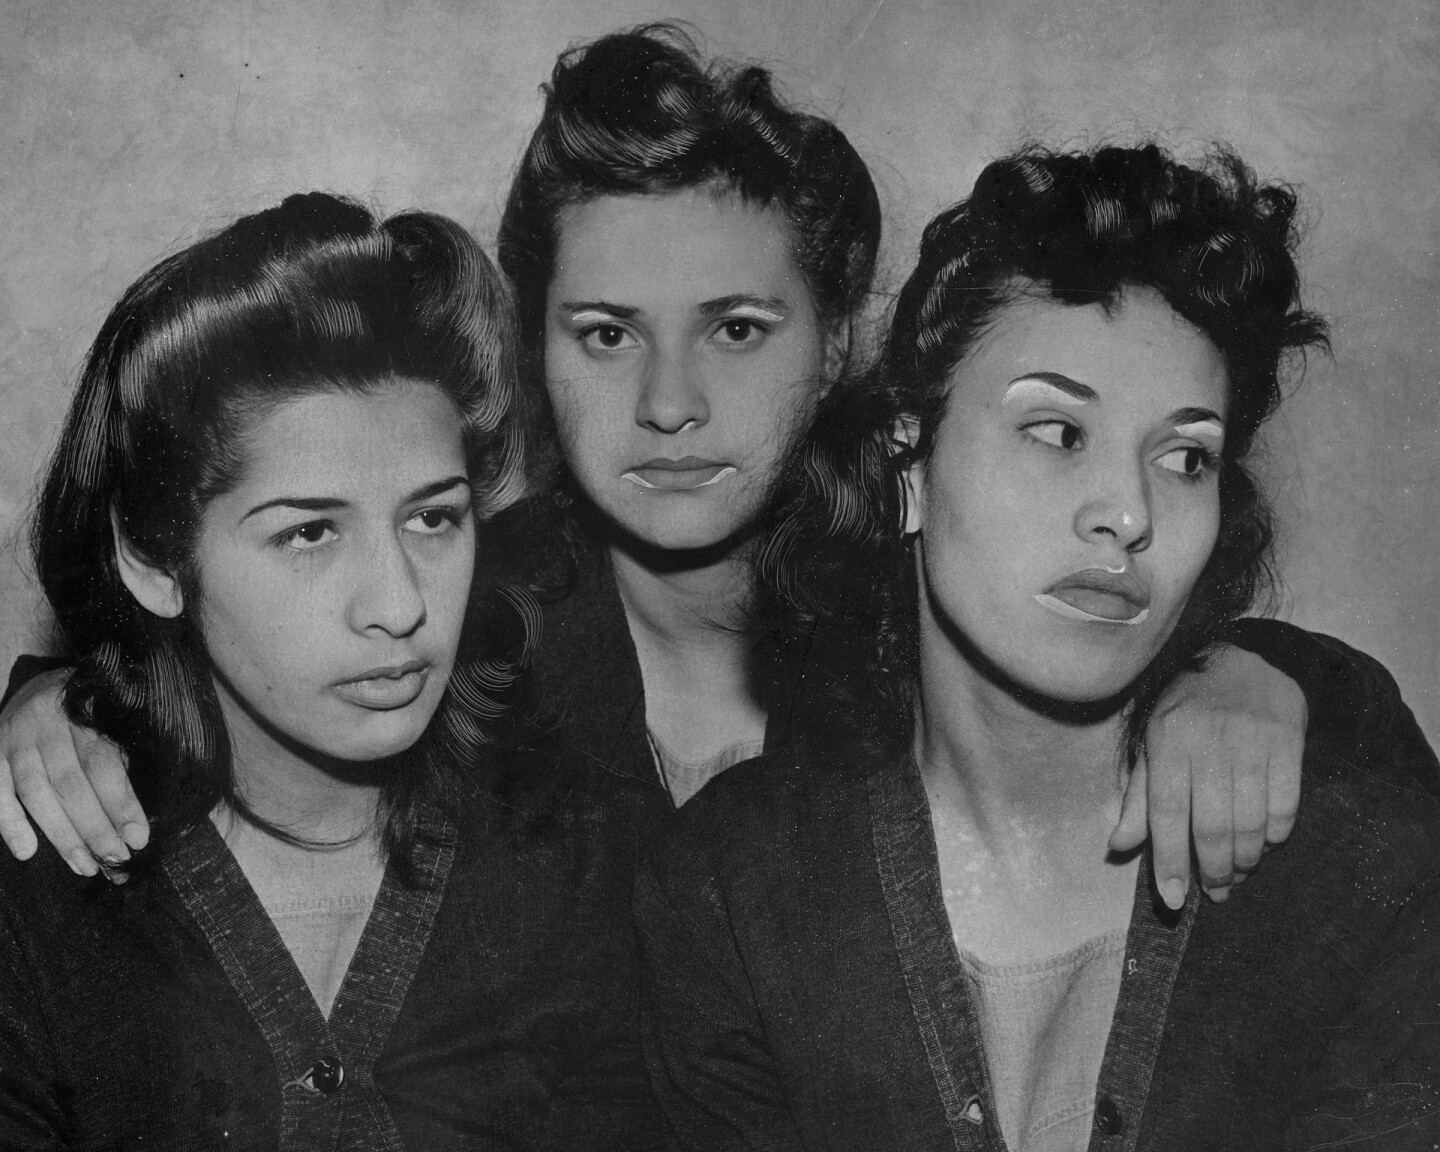 Alba Barrios, Francis Silva, and Lorena Encinas, held in prison in connection with slaying during the Zoot suit period, 1942.